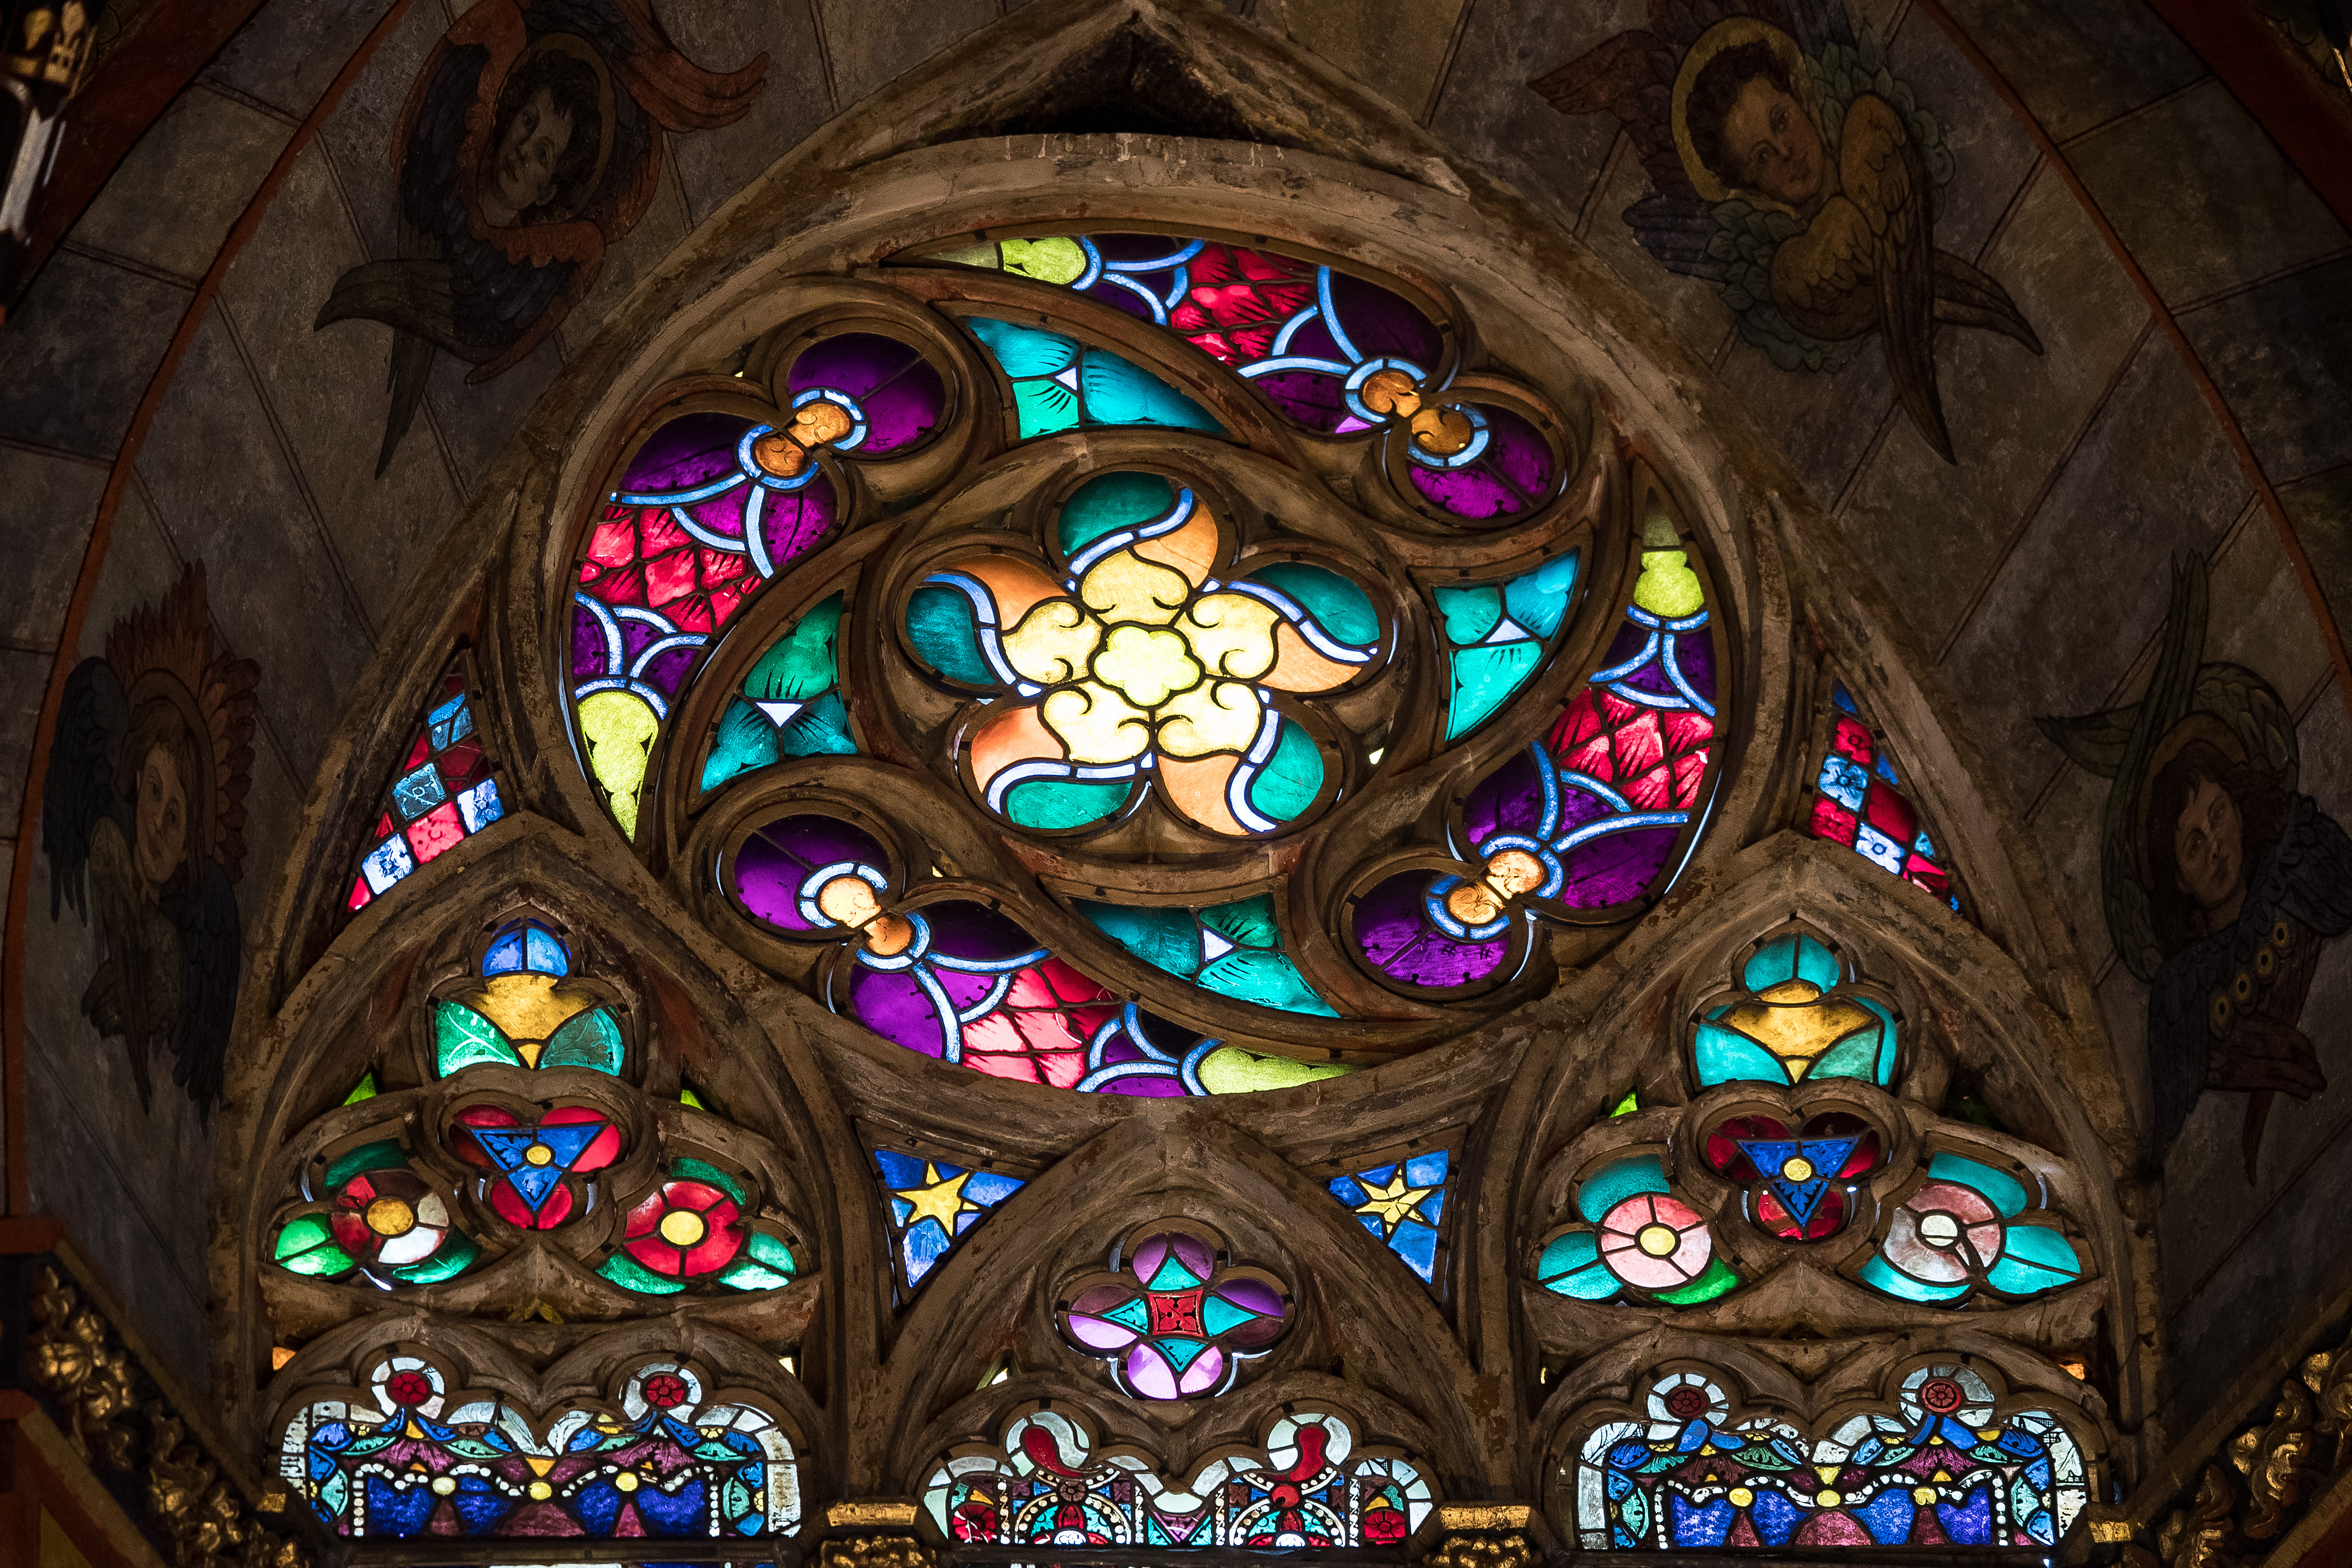 Gothic stained glass altarpiece by Veit Stoss at St. Mary's Basilica in Krakow, Poland.